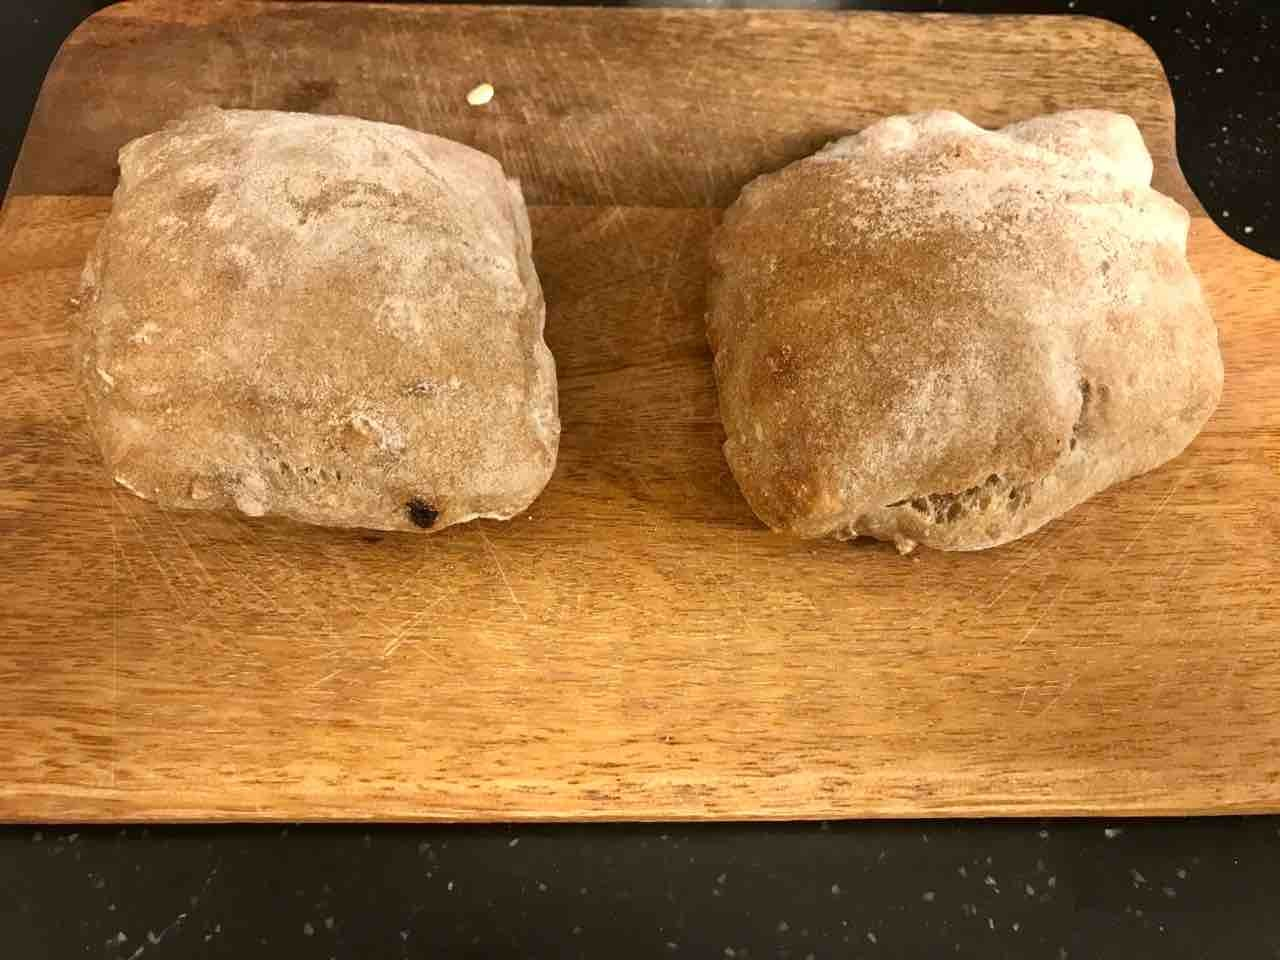 Fresh bread from Pesso (22/03)